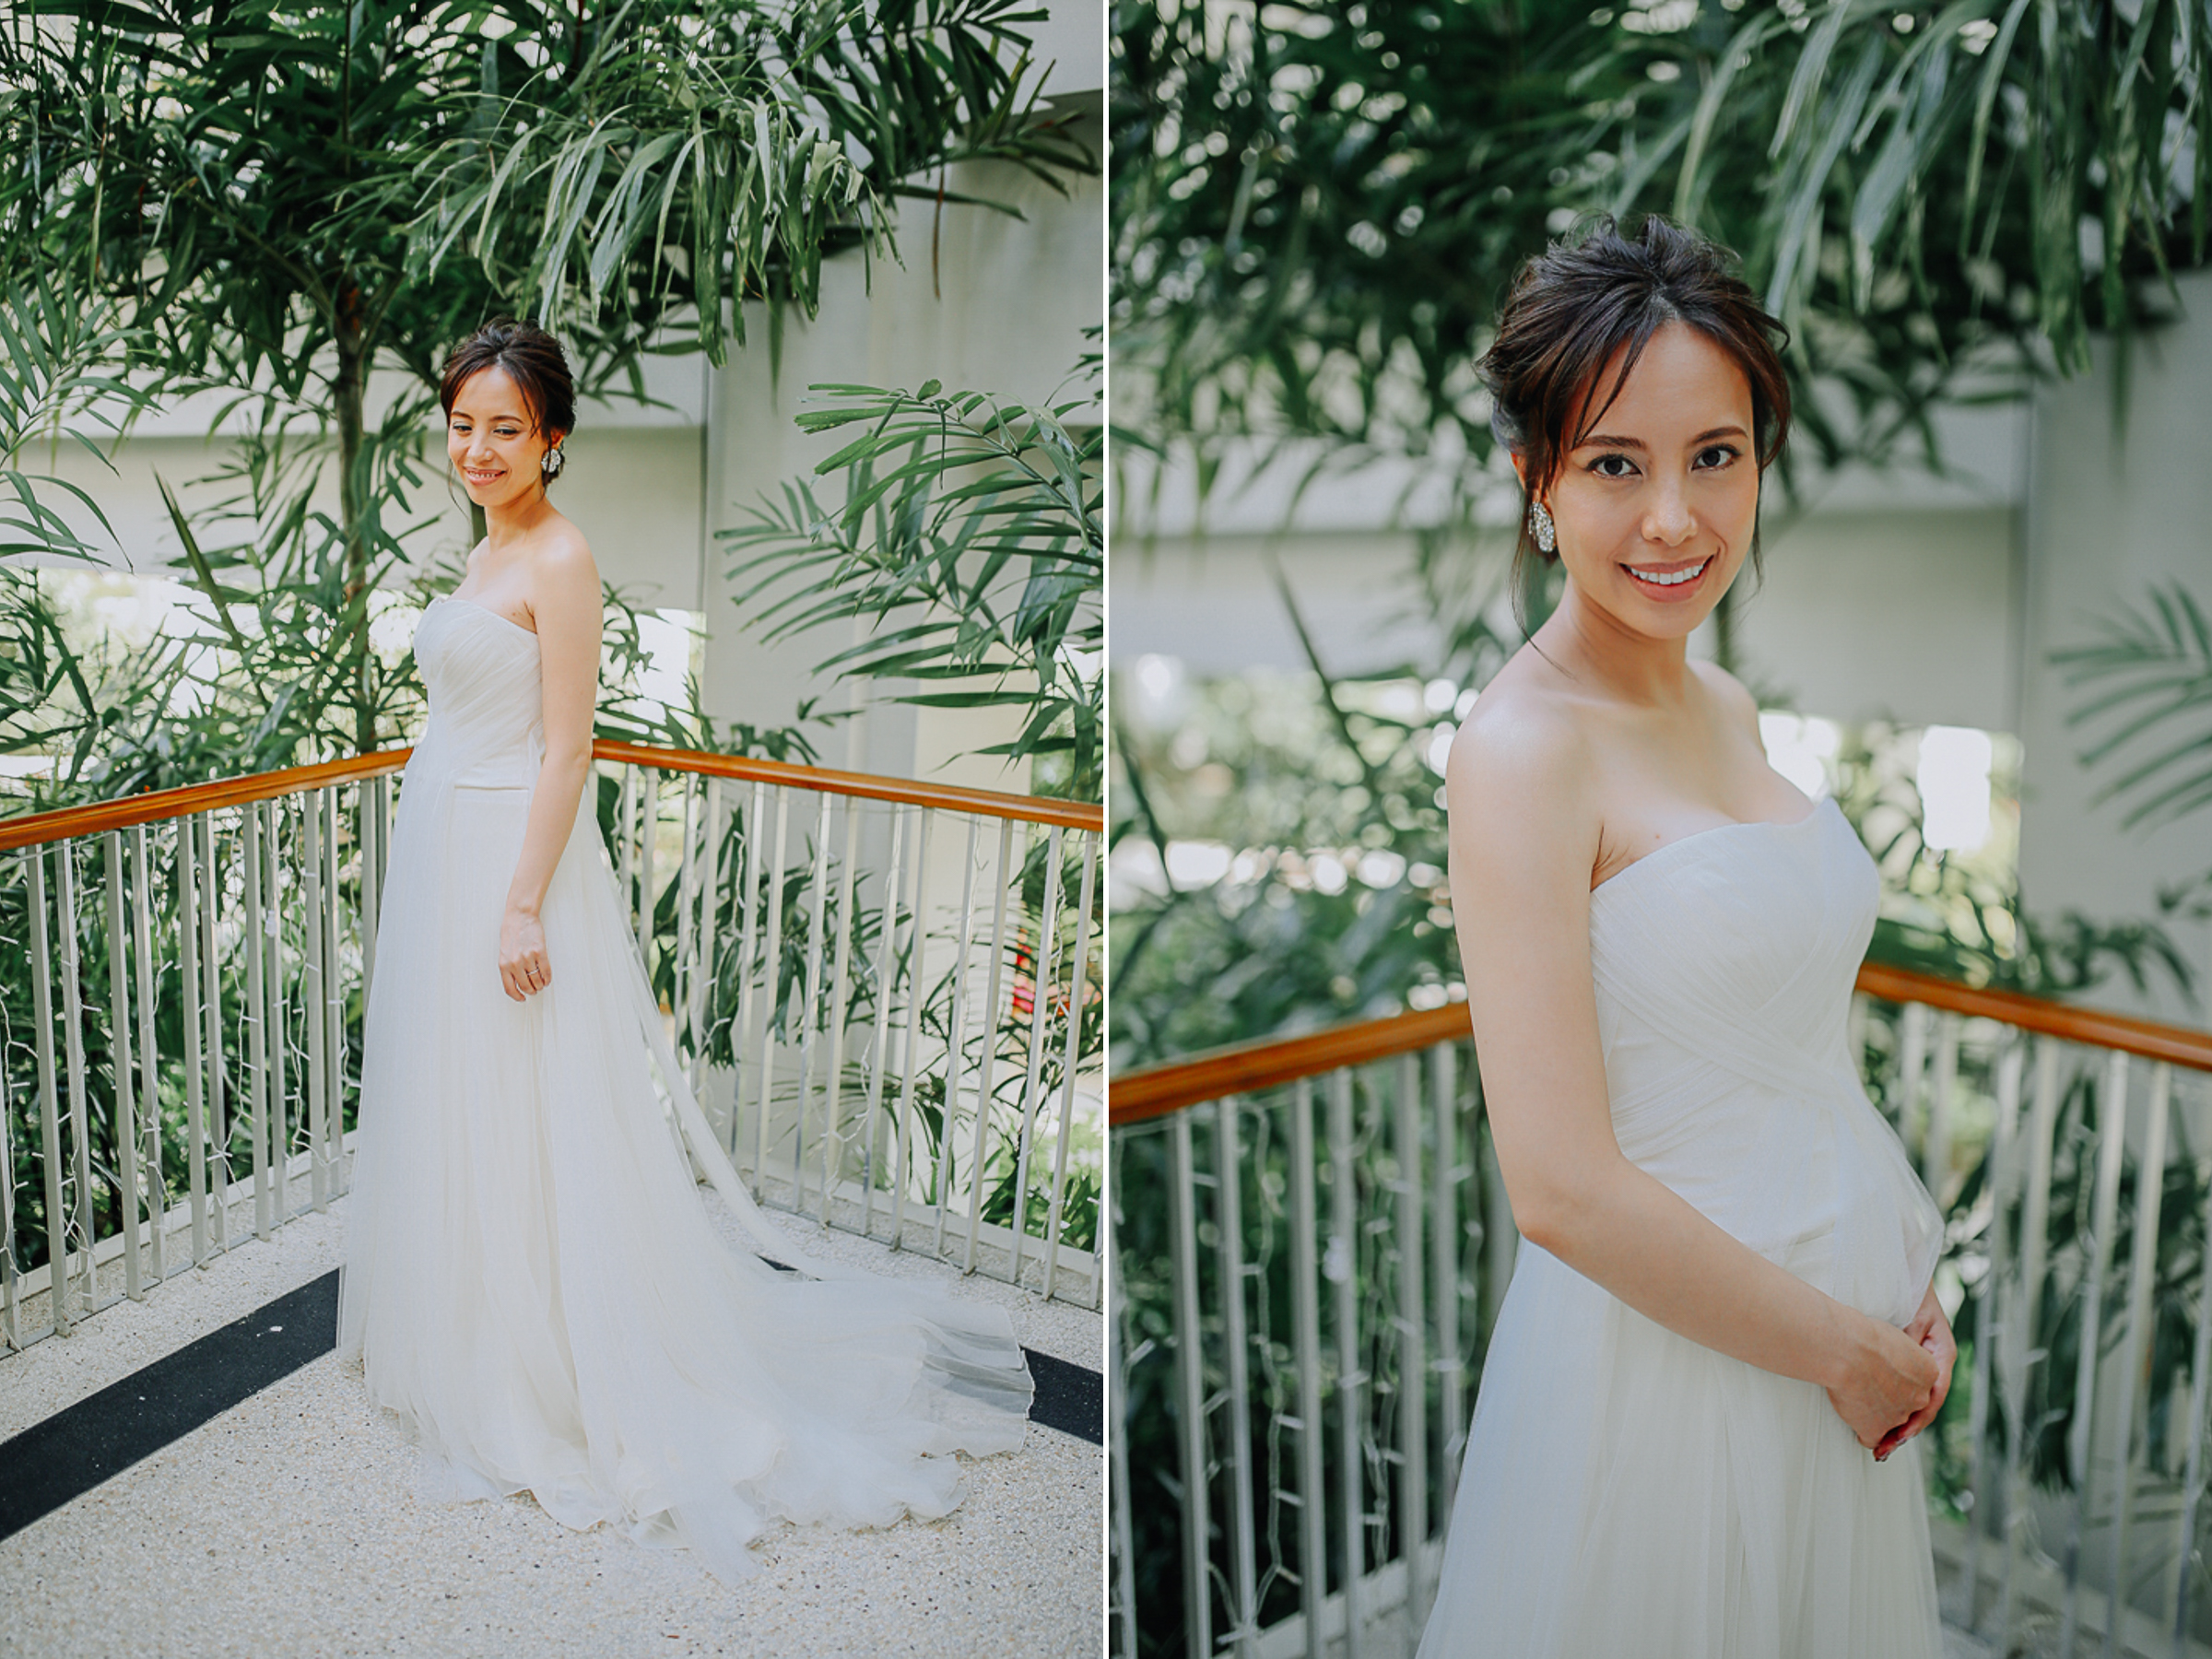 Shangrila Beach Wedding